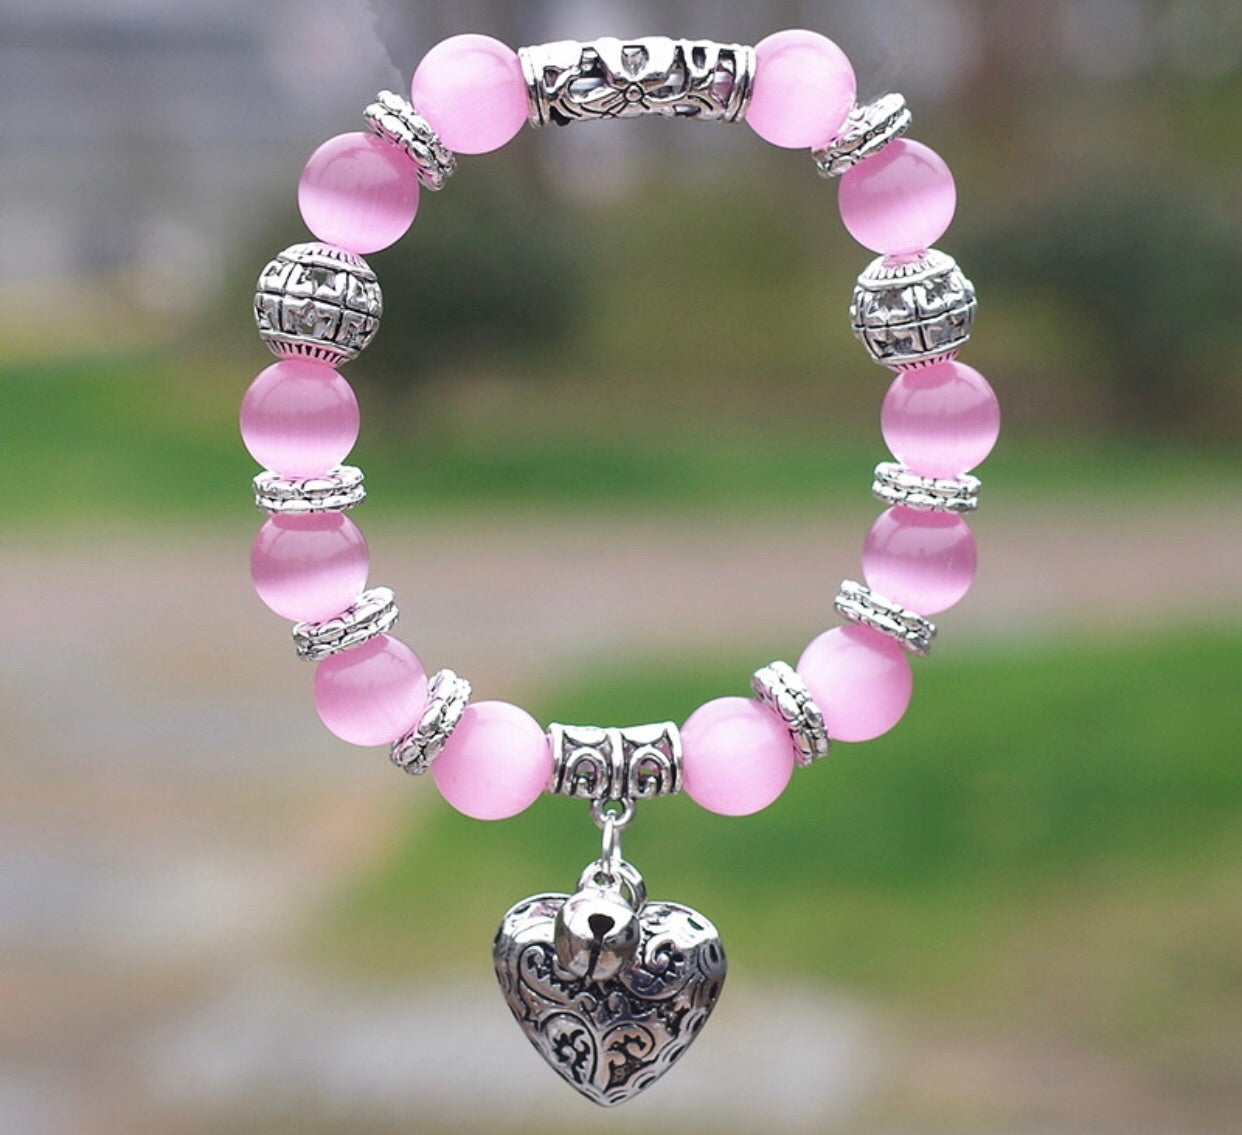 Beautiful pink bracelet with heart